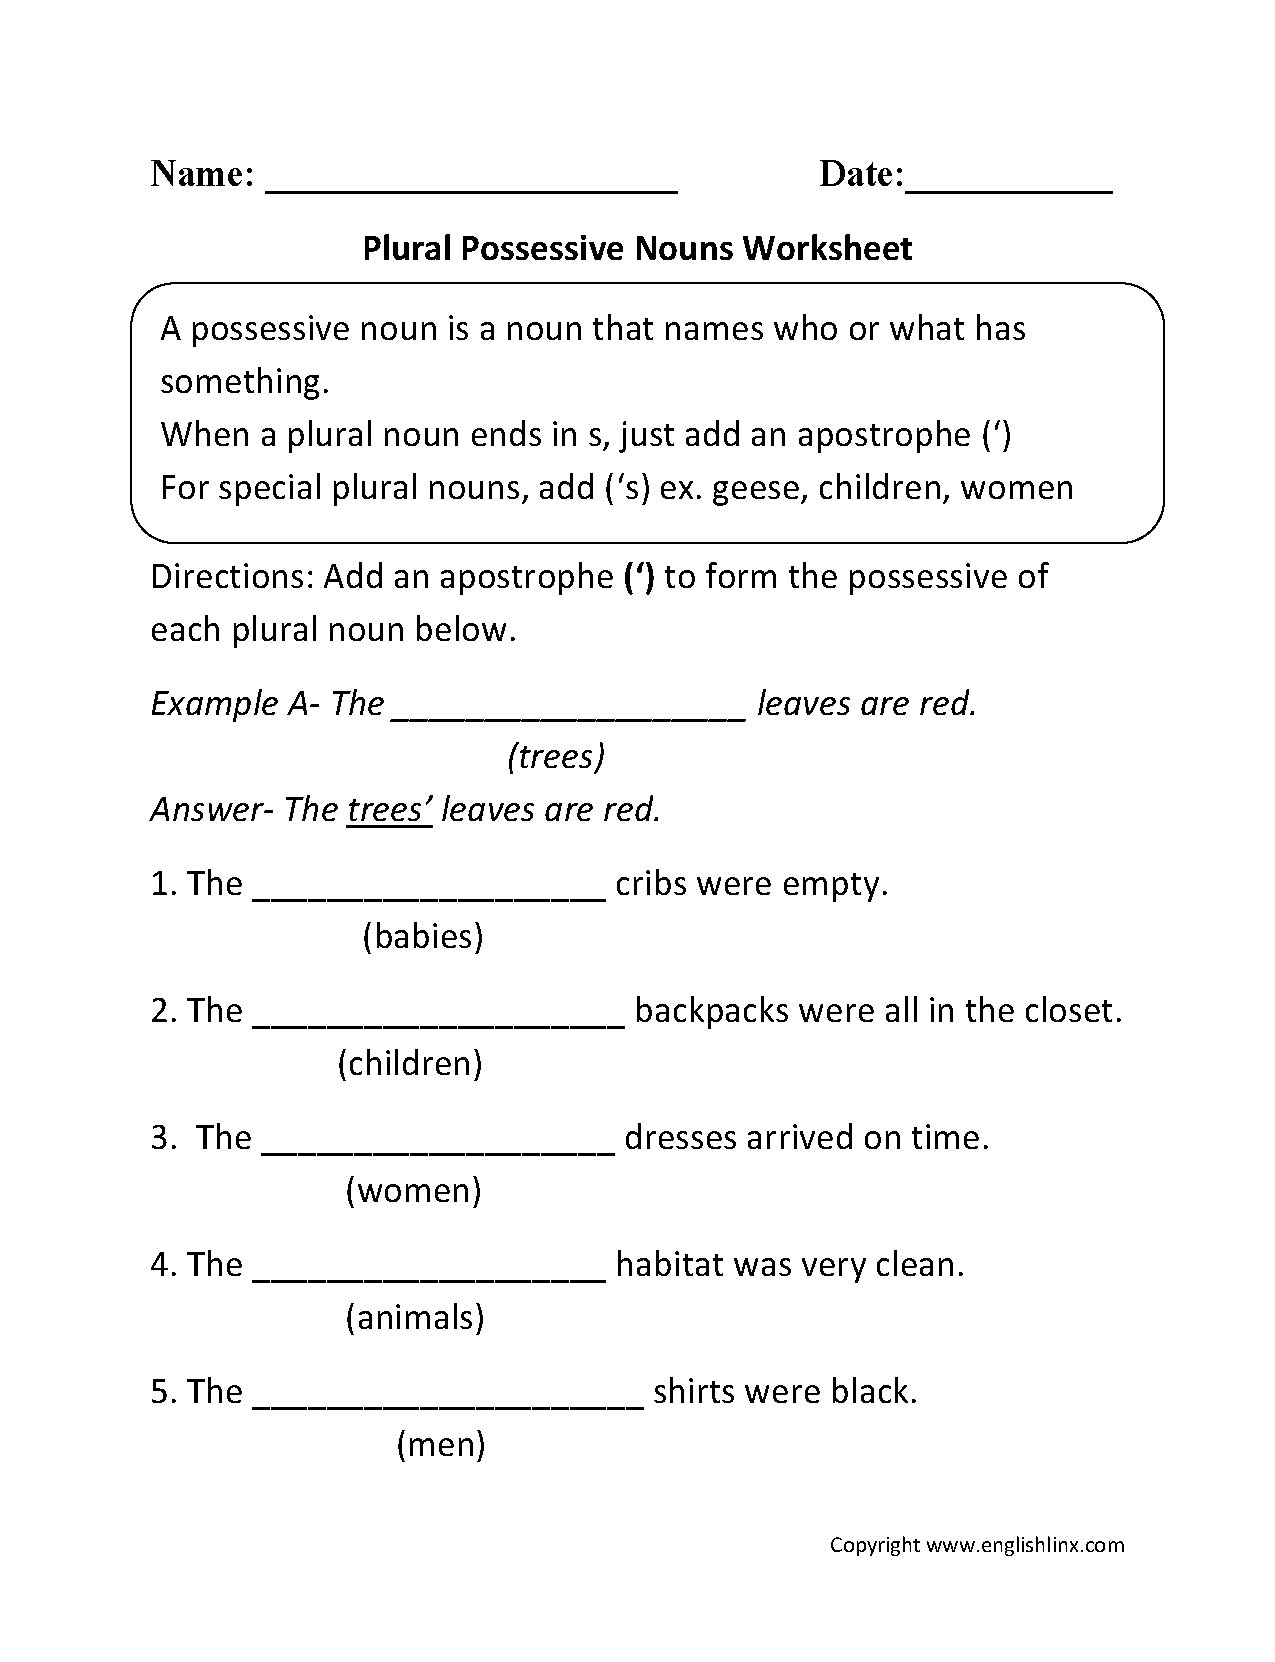 worksheet Plural Possessive Nouns Worksheet nouns worksheets possessive plural worksheets